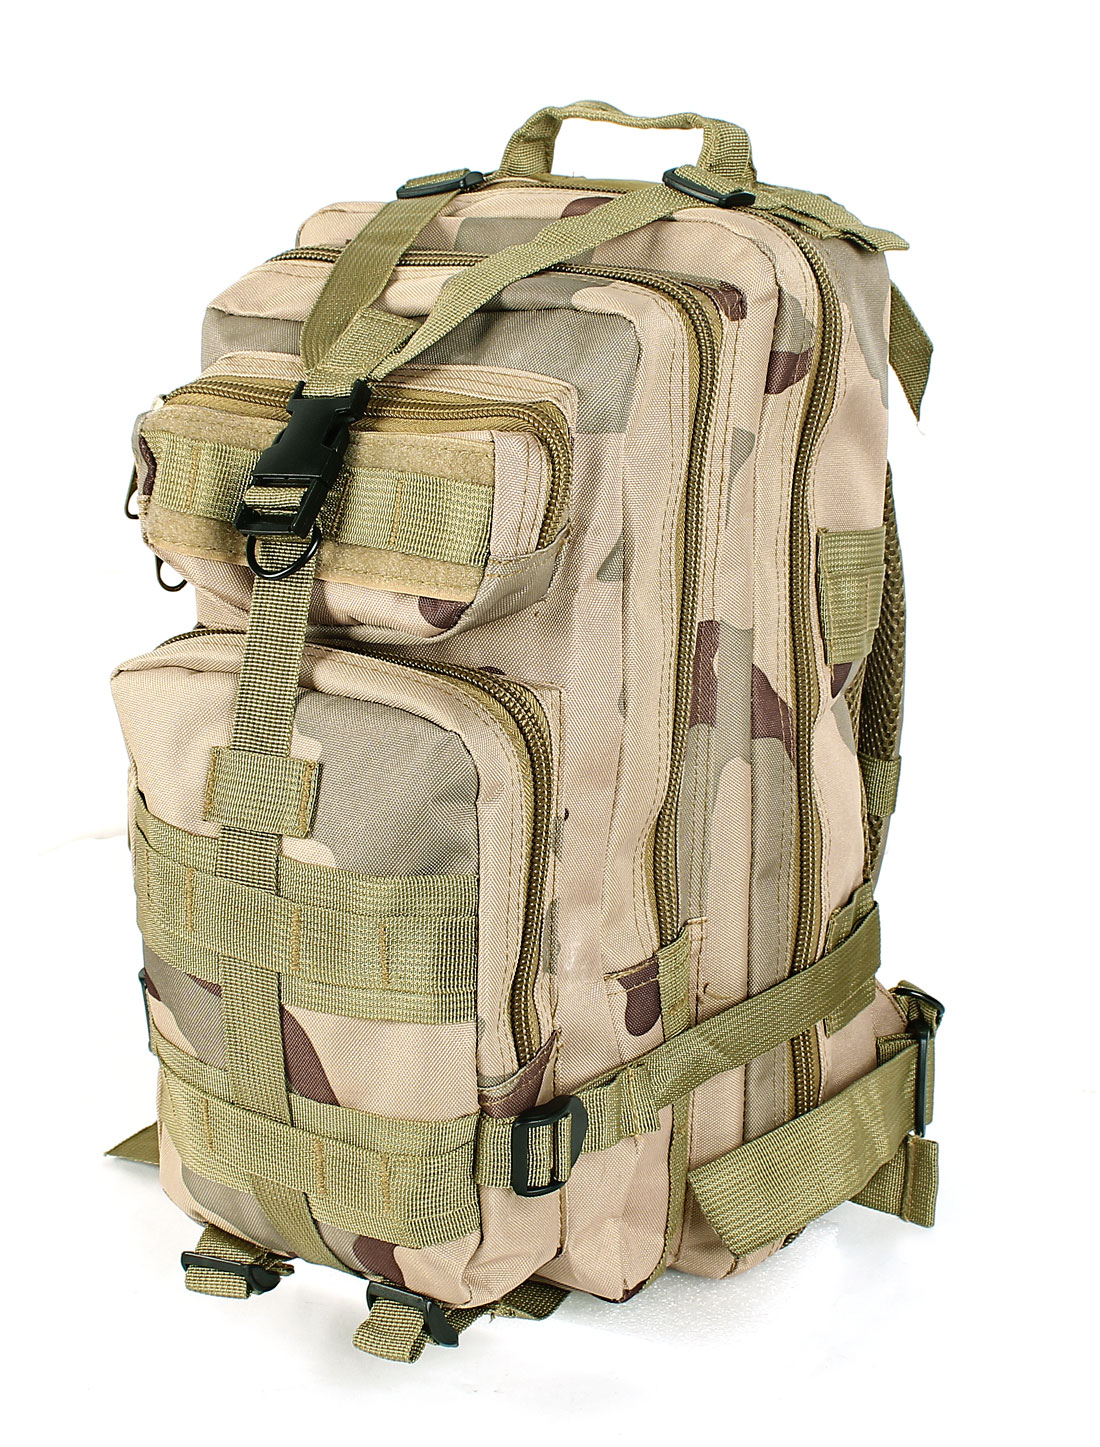 Military Tactical Camouflage Print Oxford Cloth Hiking Backpack Khaki Army Green